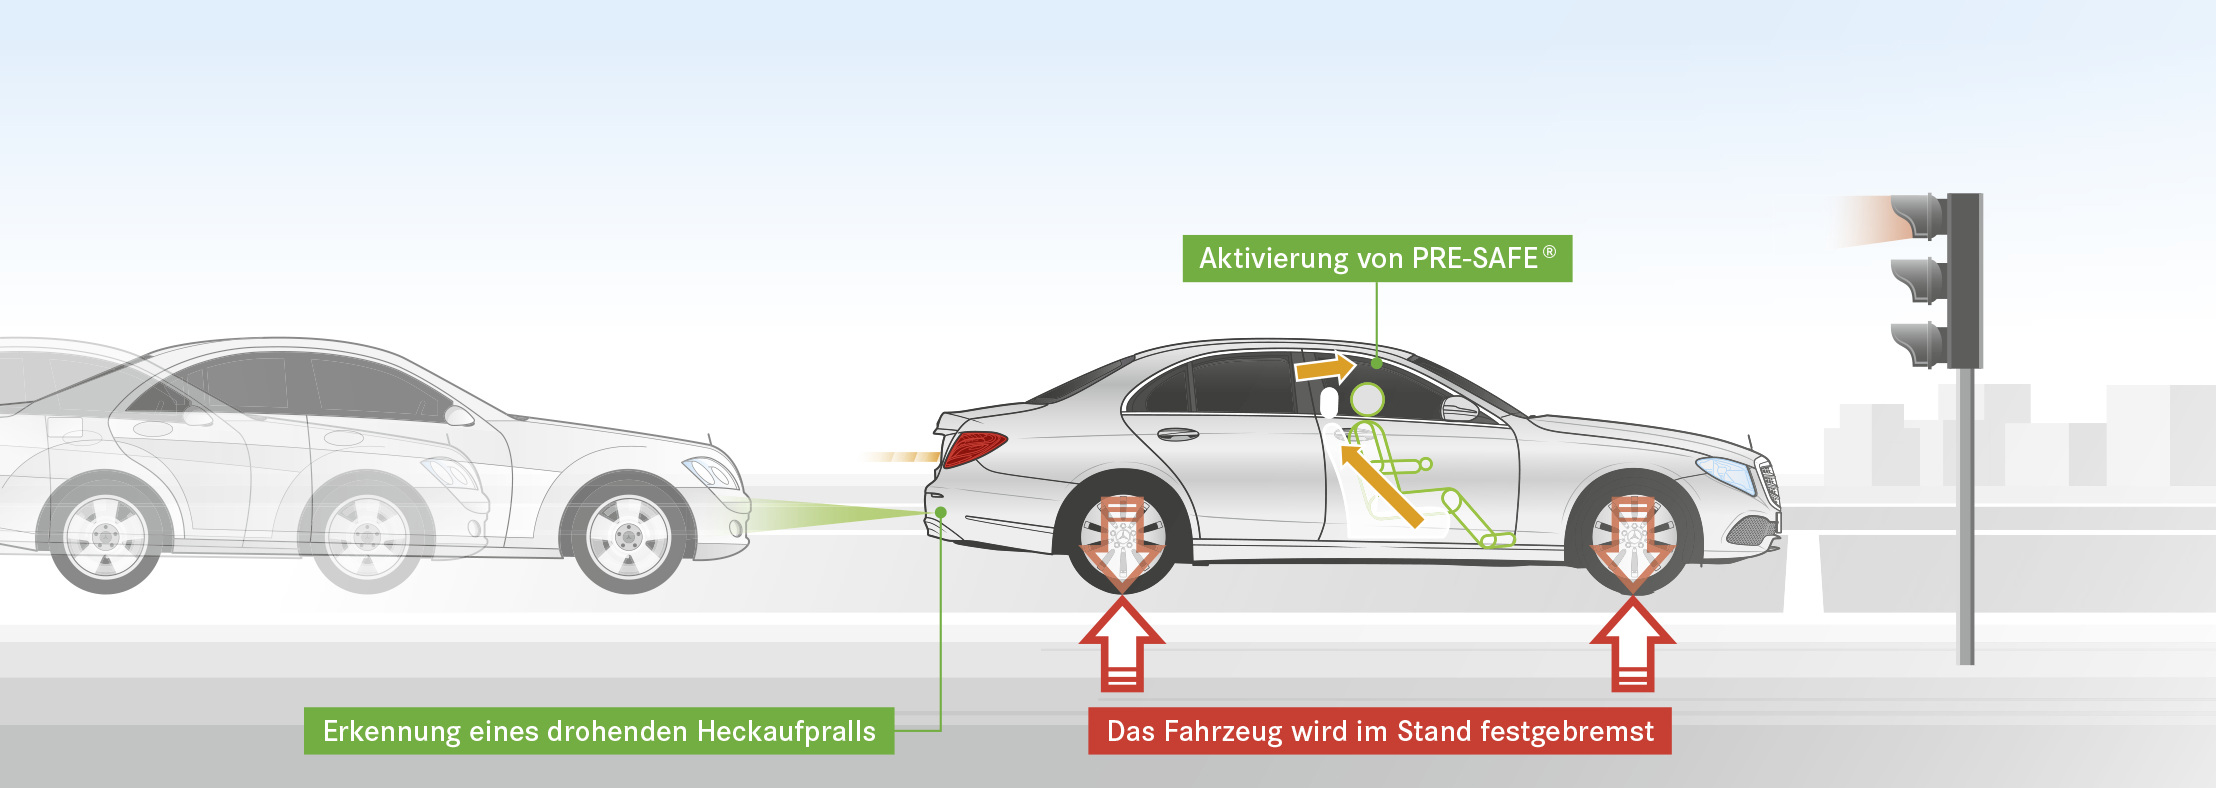 Sistema pre-safe plus Mercedes-Benz Concesur